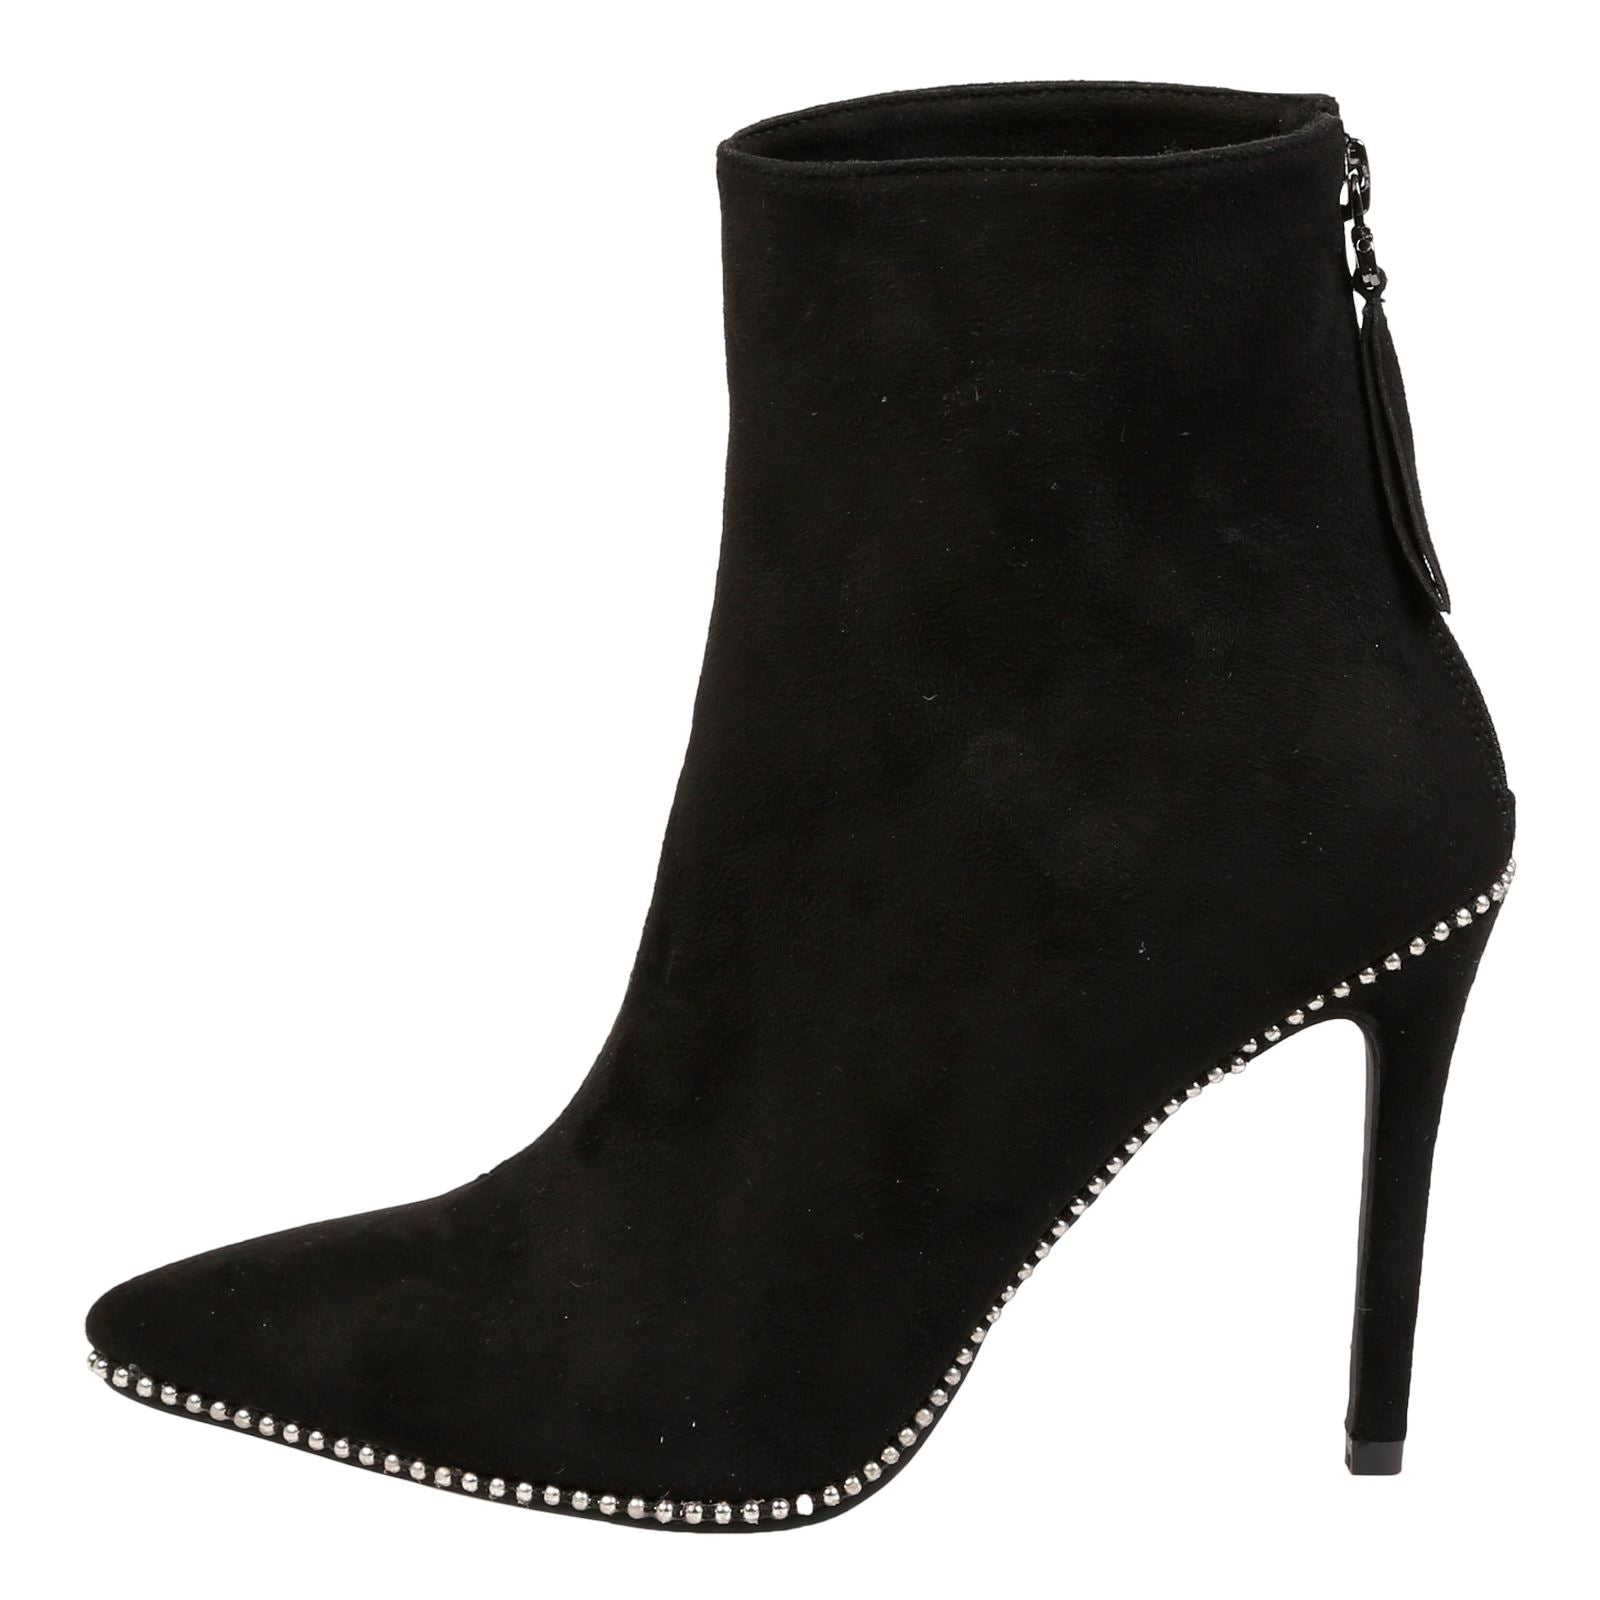 Emmie Stilleto Heel Ankle Boots in Black - Feet First Fashion